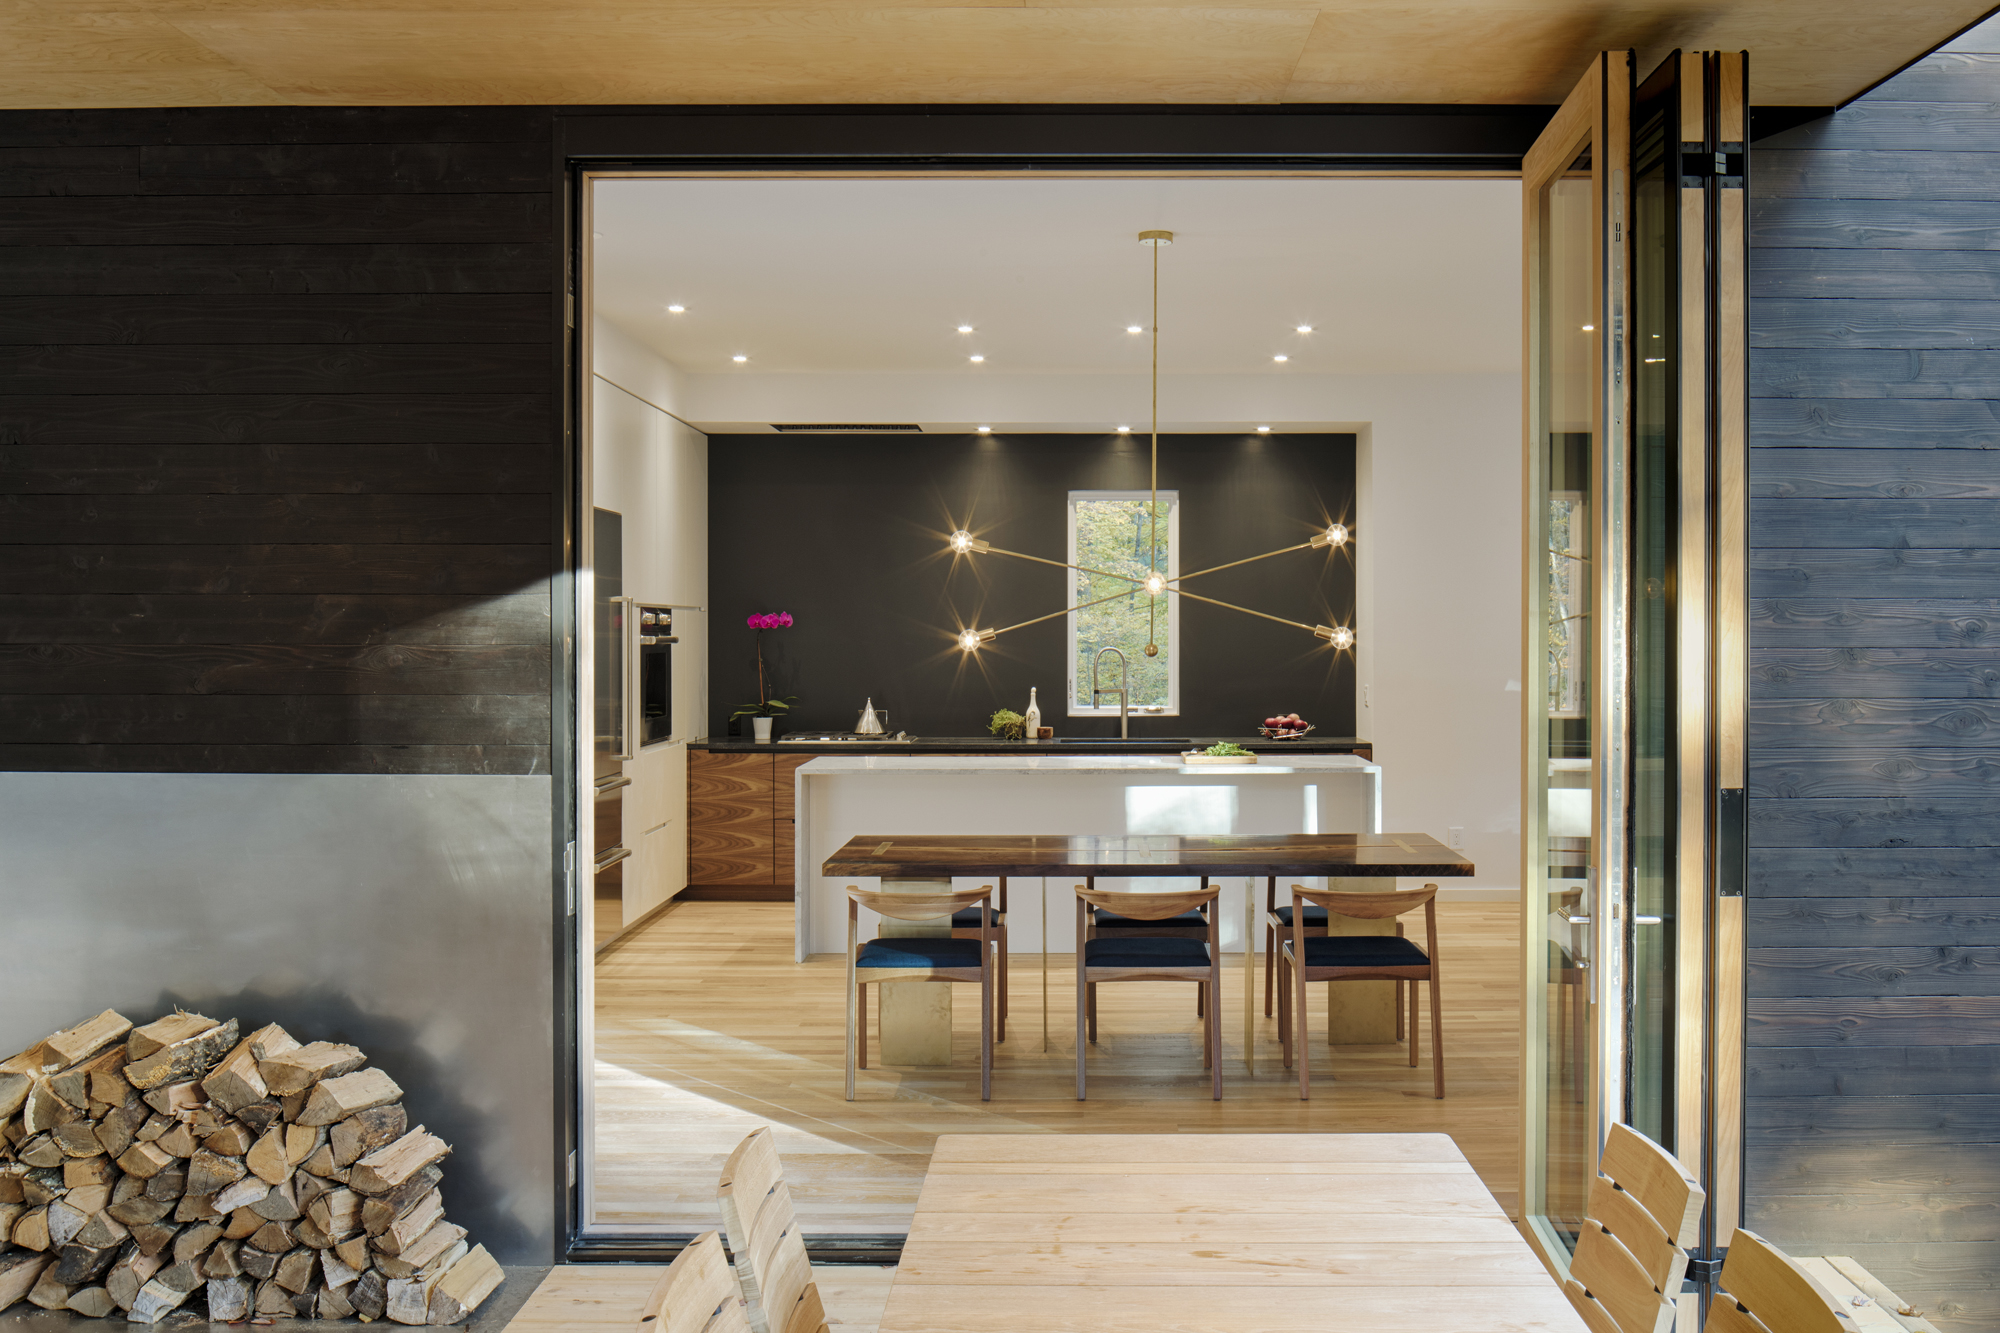 Modern Kitchen: The Heart of the Home